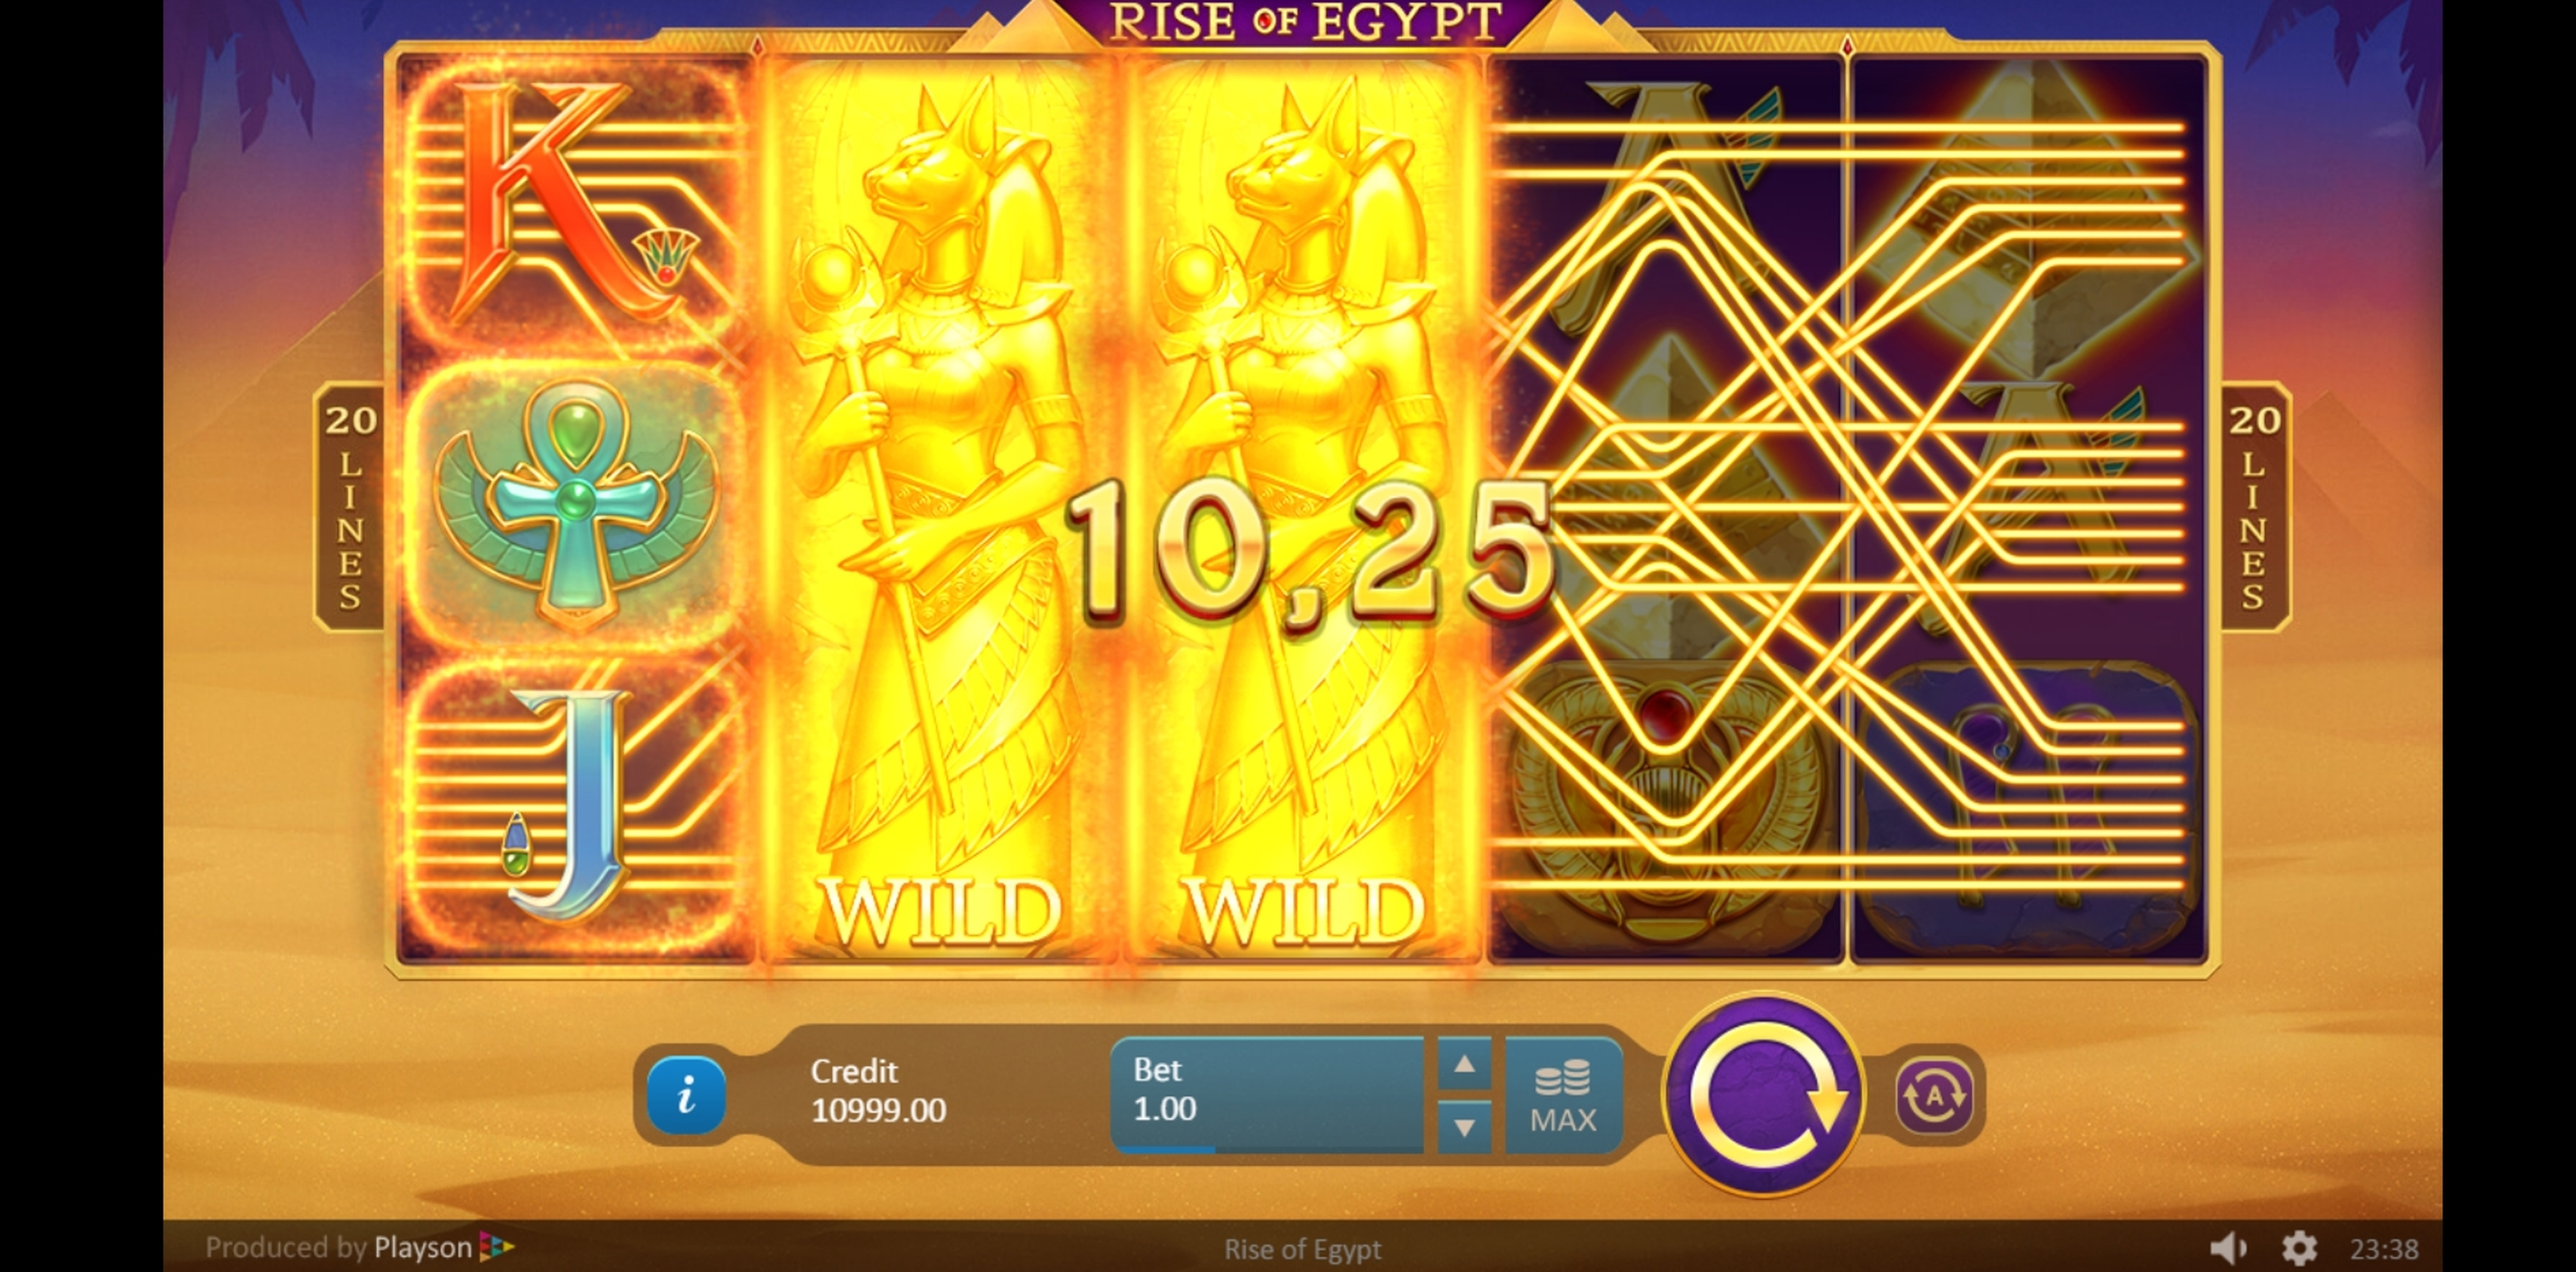 Win Money in Rise of Egypt Free Slot Game by Playson